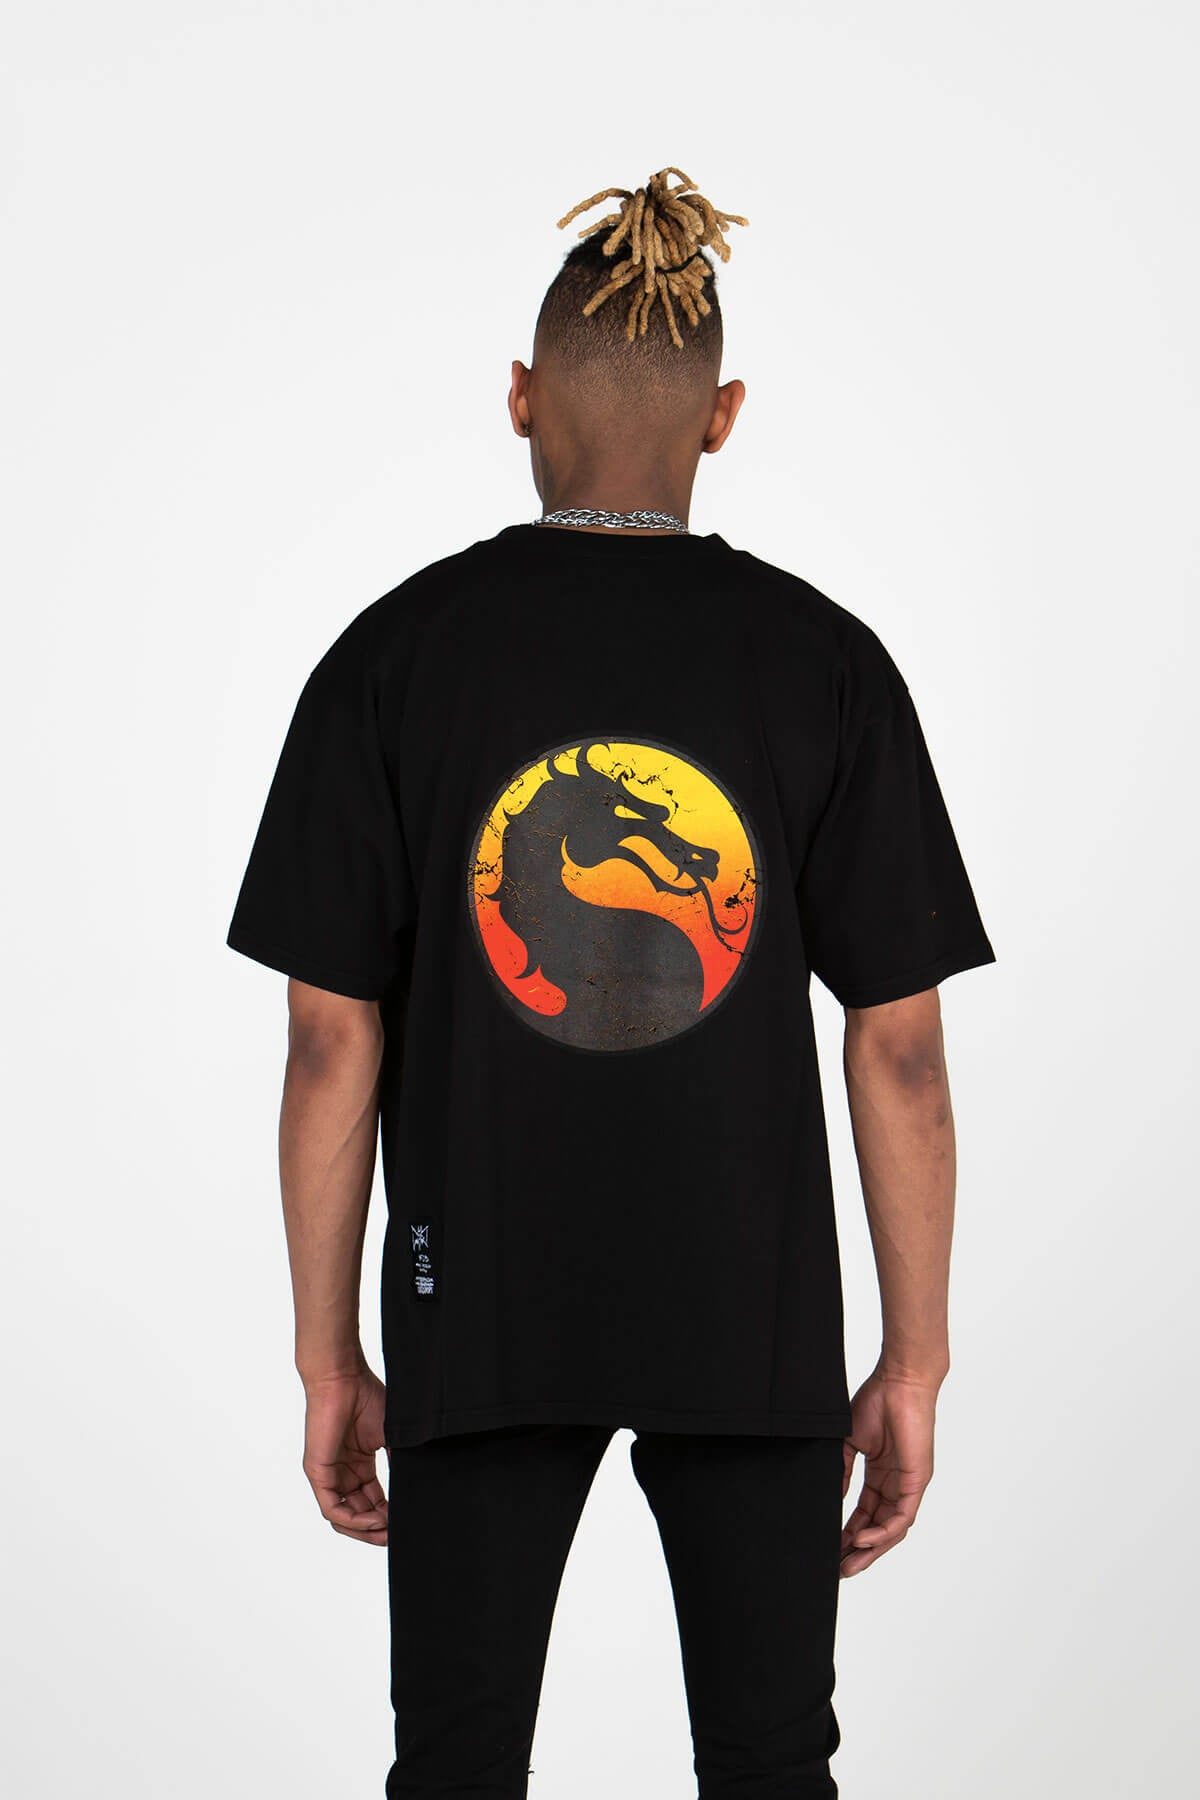 MORTAL KOMBAT X MJB (LIMITED EDITION) – FESTIVAL T SHIRT - TOP - MJB